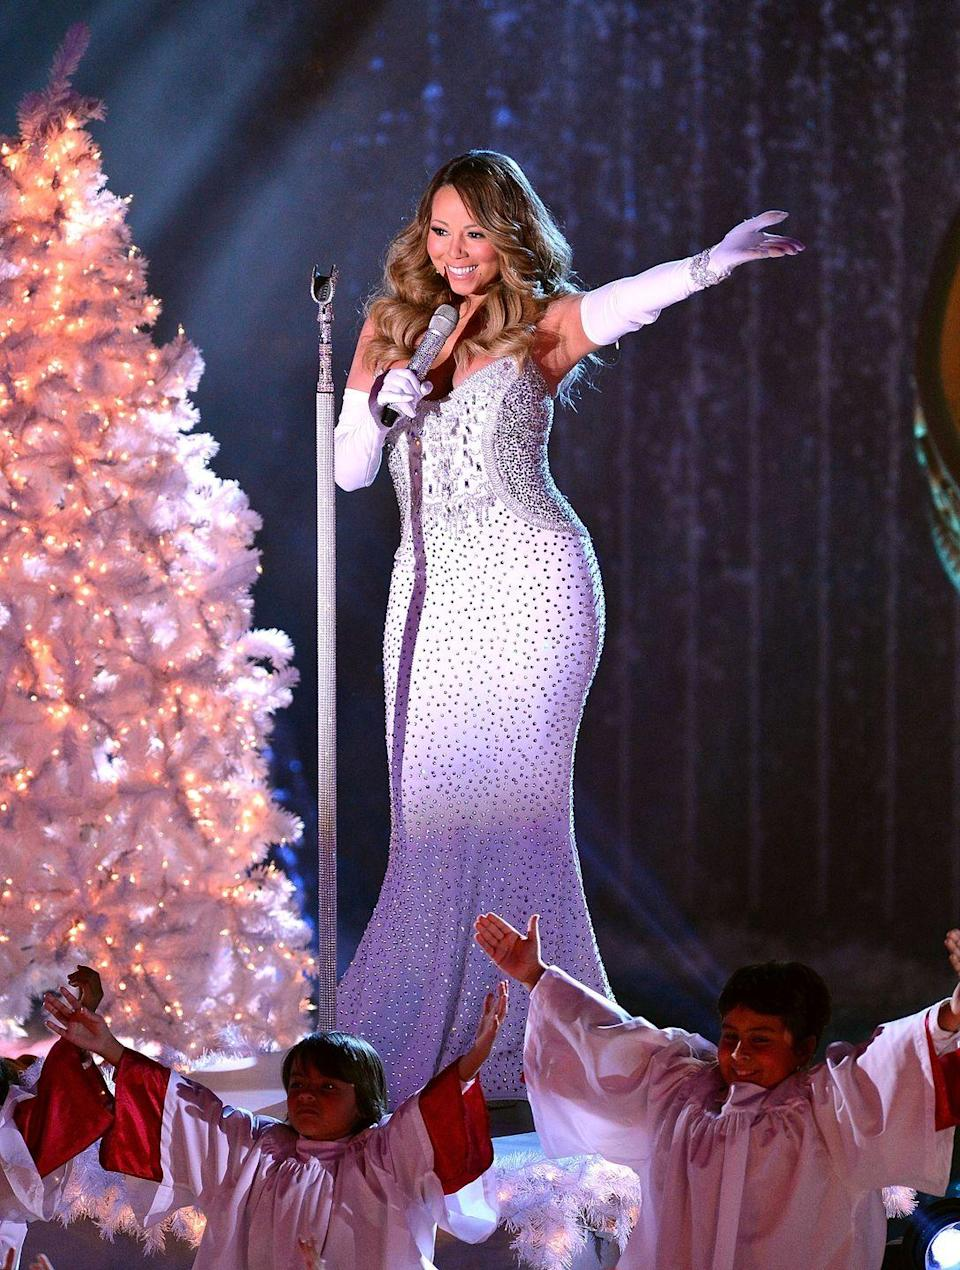 """<p>One of the best ways to get in the holiday spirit? Infuse your home with the sounds of the season. From traditional carols like """"<a href=""""https://www.amazon.com/Silent-Night/dp/B000WOUU9U/r?tag=oprah-auto-20&ascsubtag=[artid